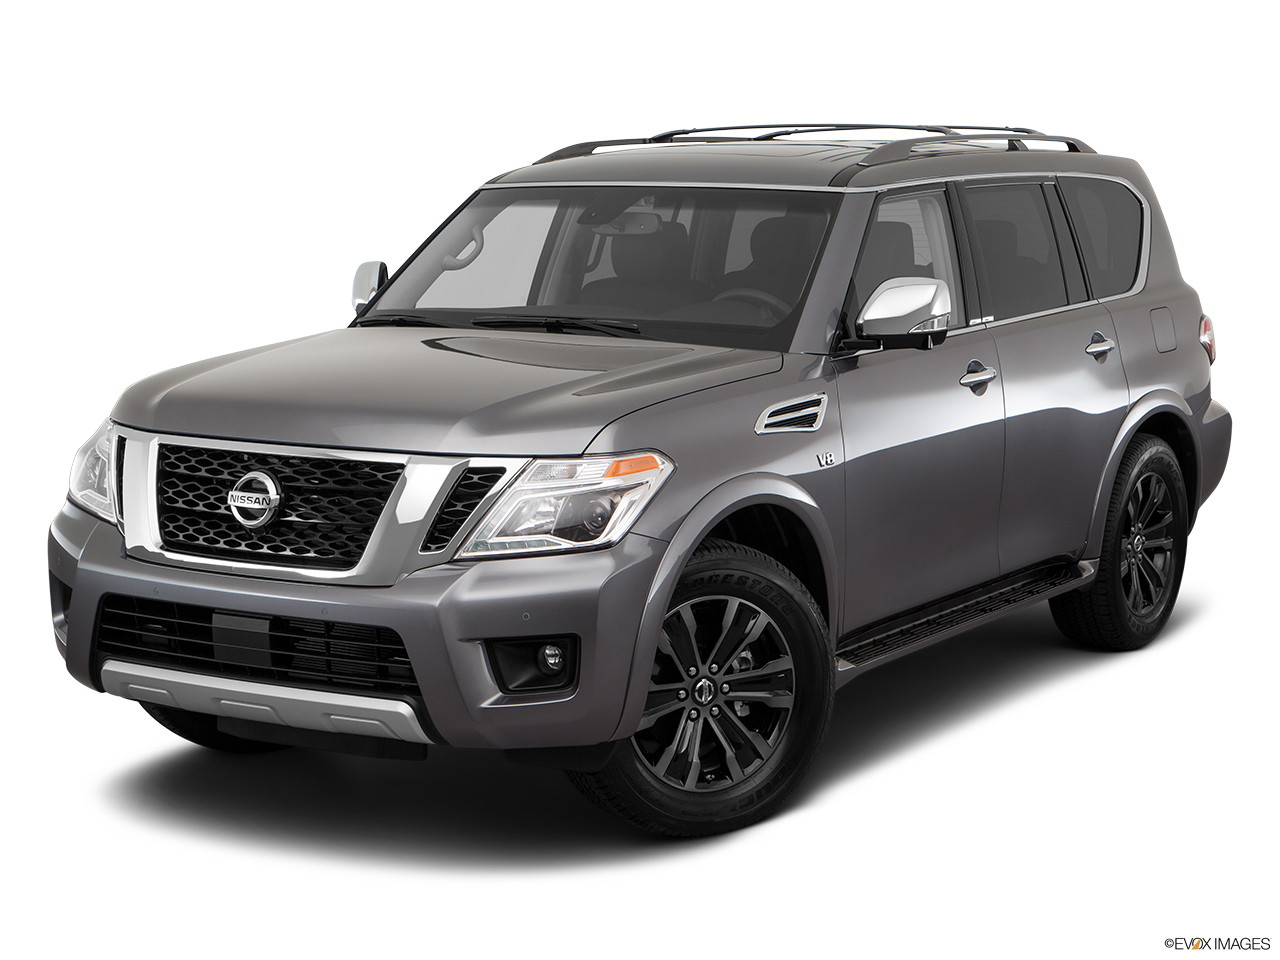 Nissan Patrol 2018 Model New Car Release Date And Review 2018 Amanda Felicia